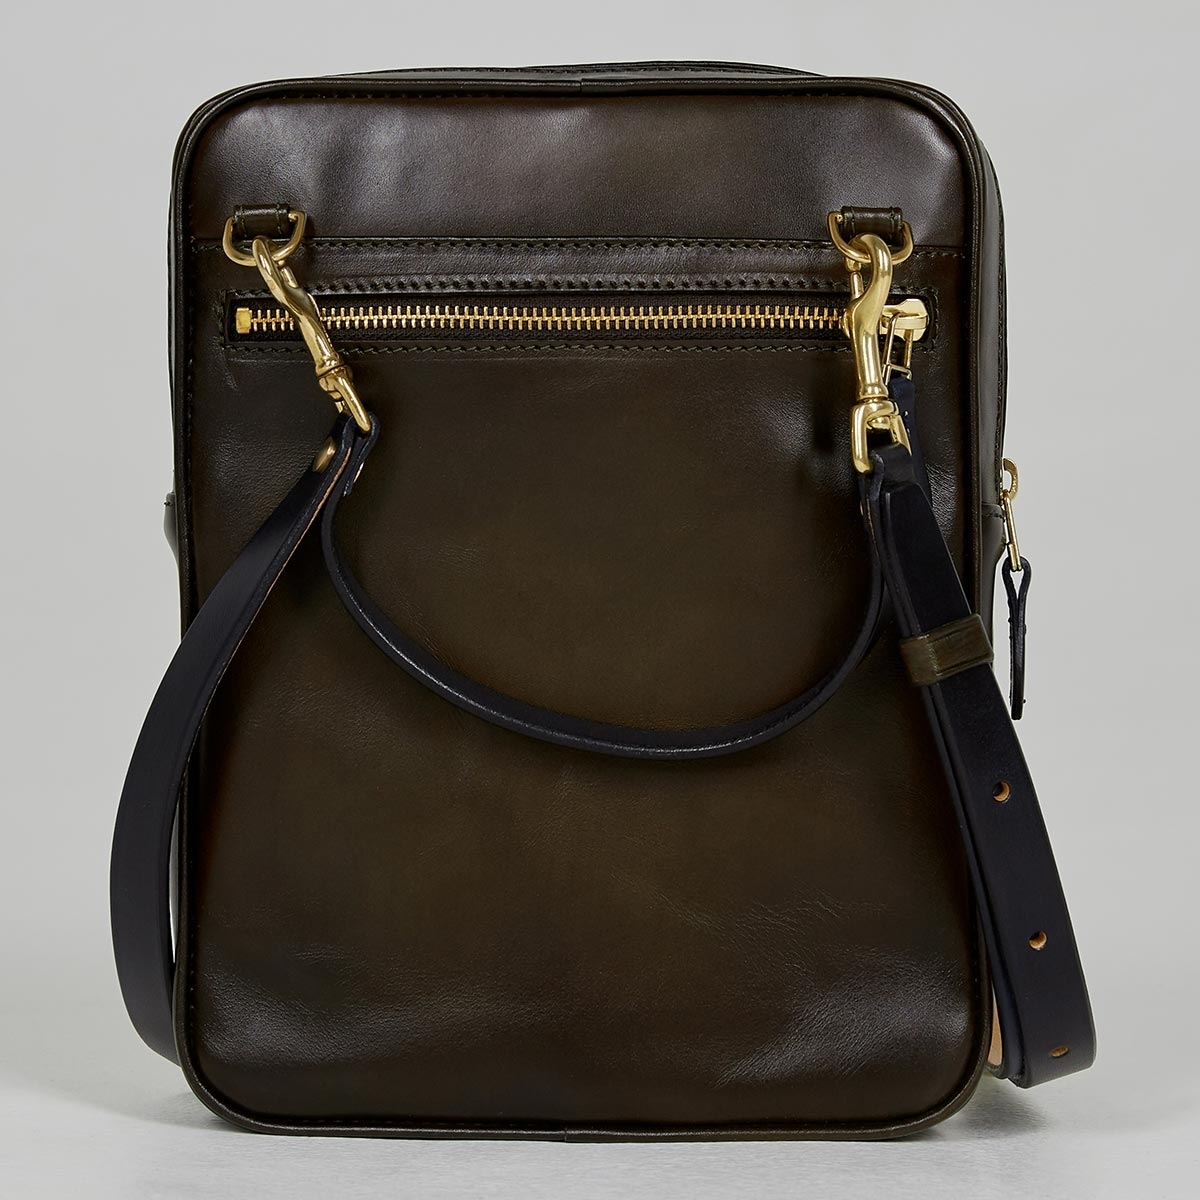 Crossbody bag MEZZO midnight blue & dark olive